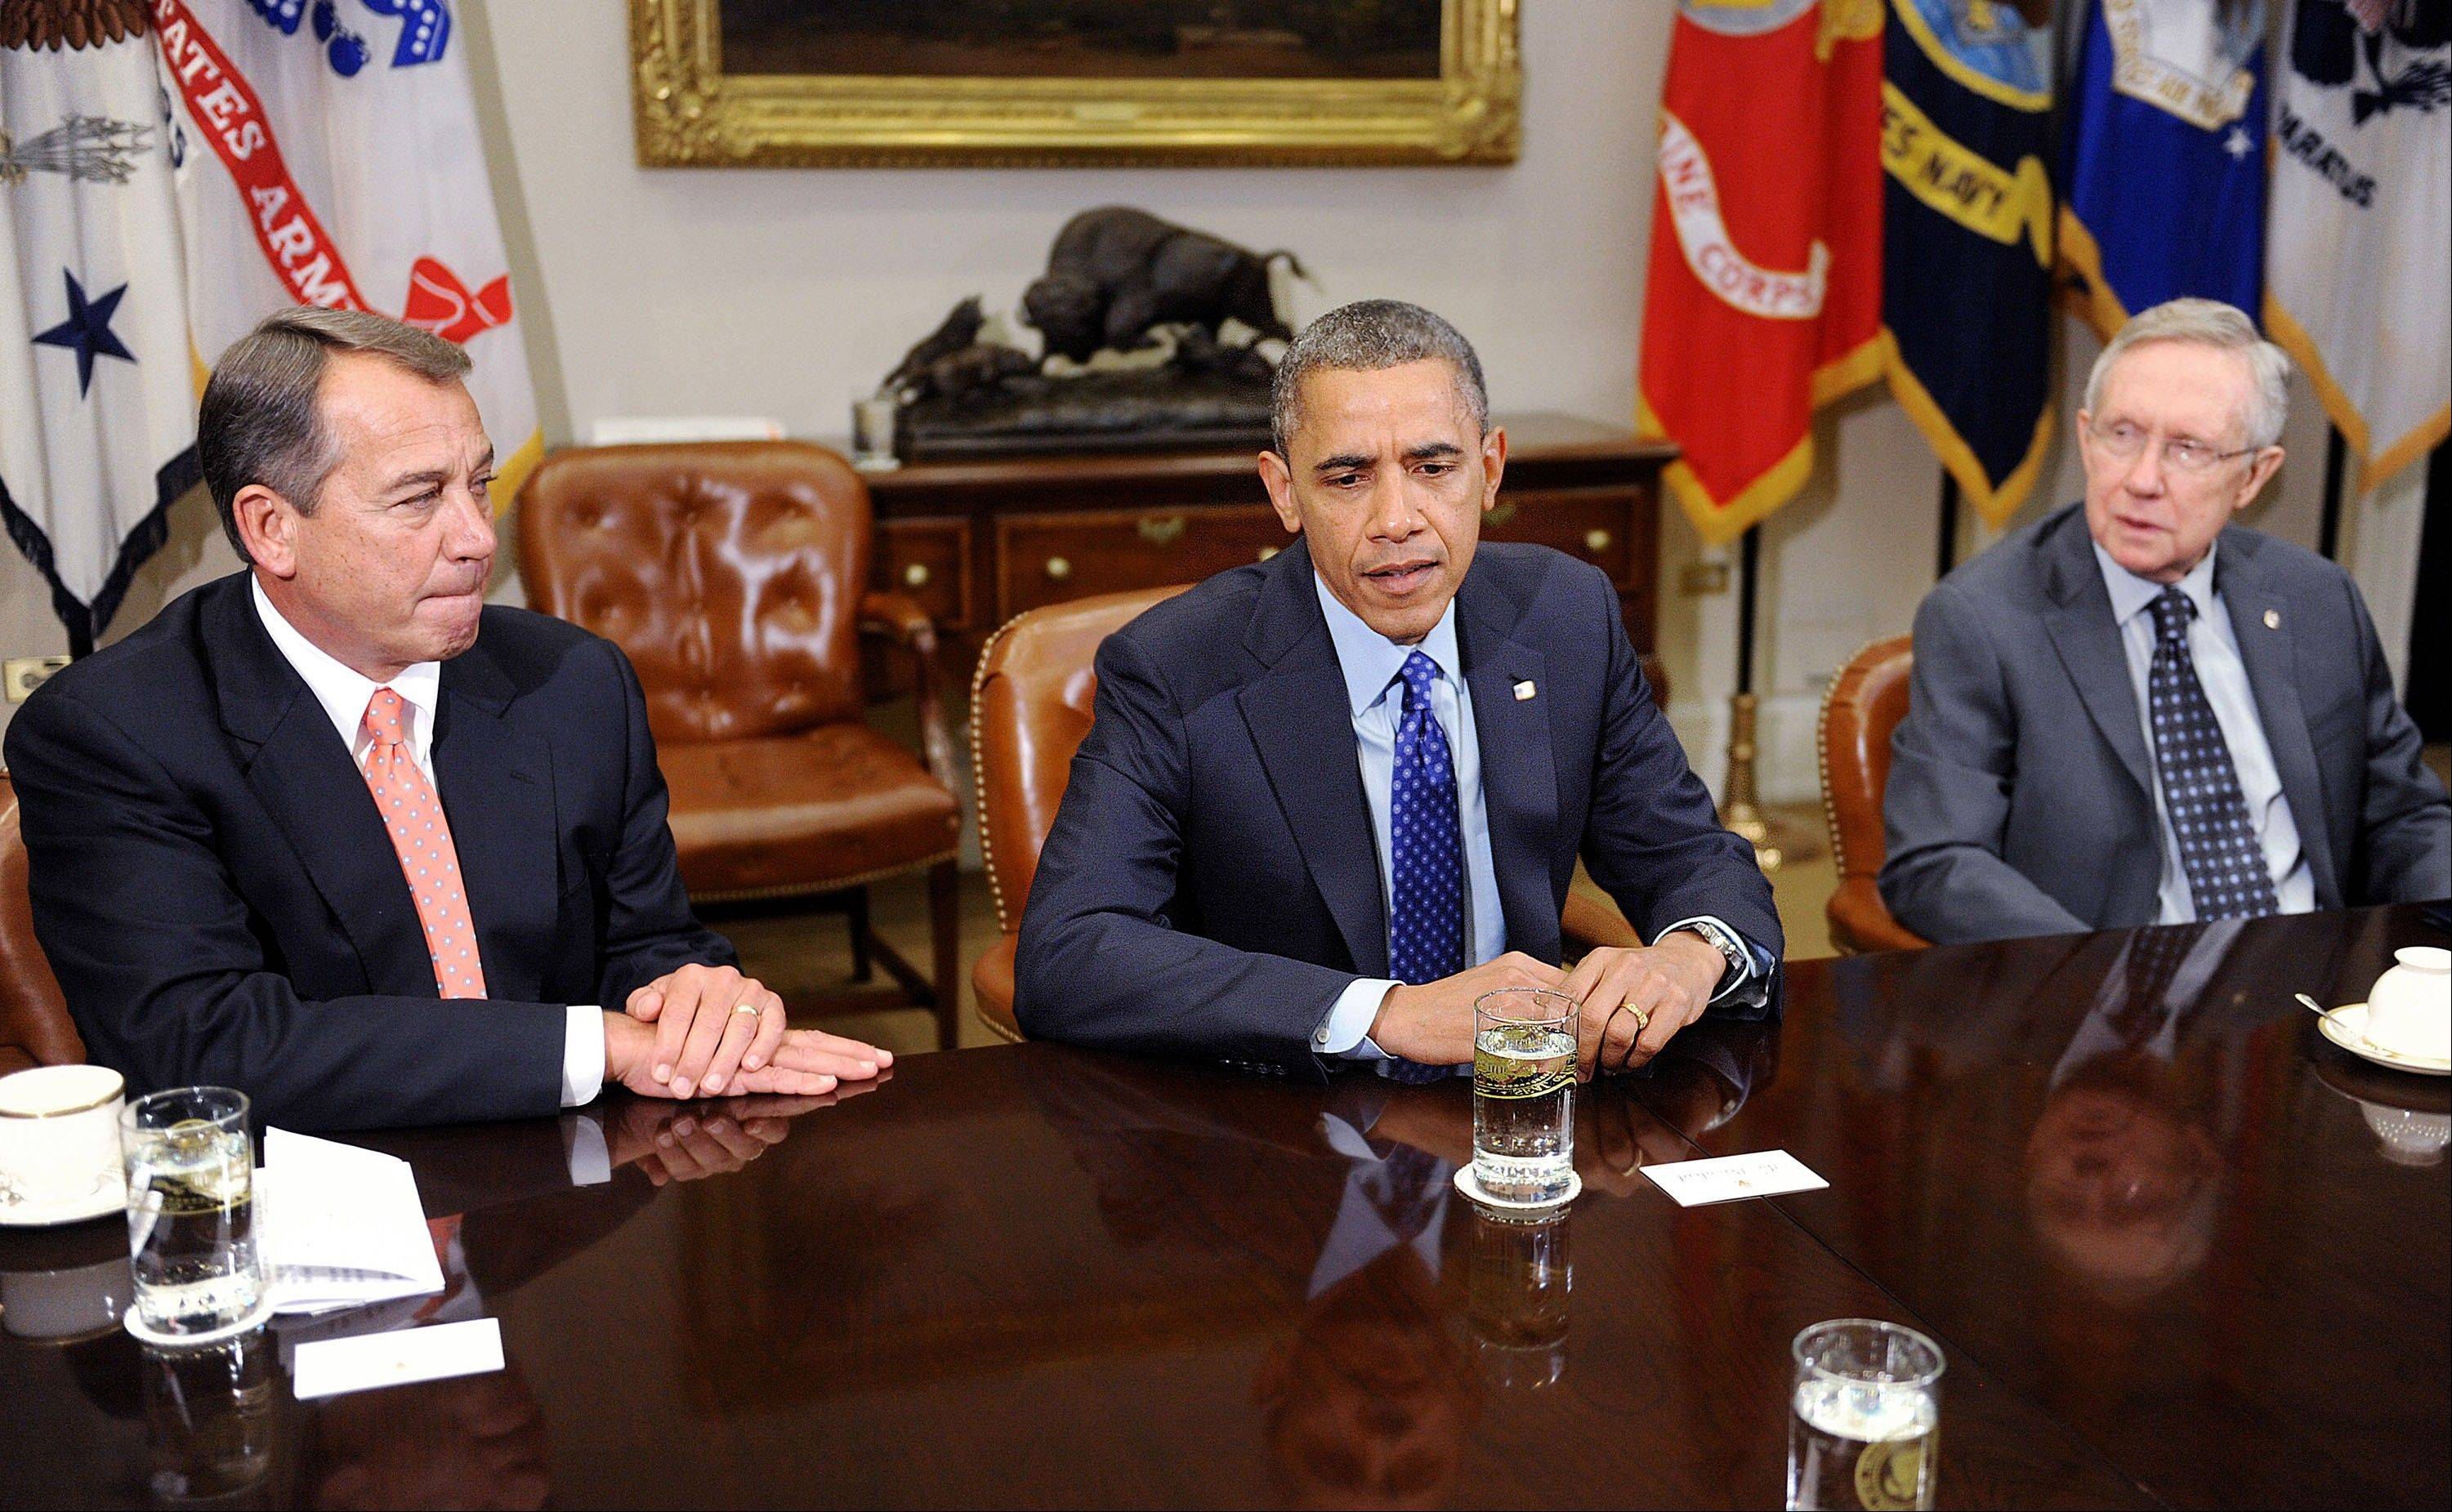 President Barack Obama, center, speaks while House Speaker John Boehner, a Republican from Ohio, left, and Harry Reid, a Democratic Senator from Nevada, listen Friday during a meeting in the Roosevelt Room of the White House.